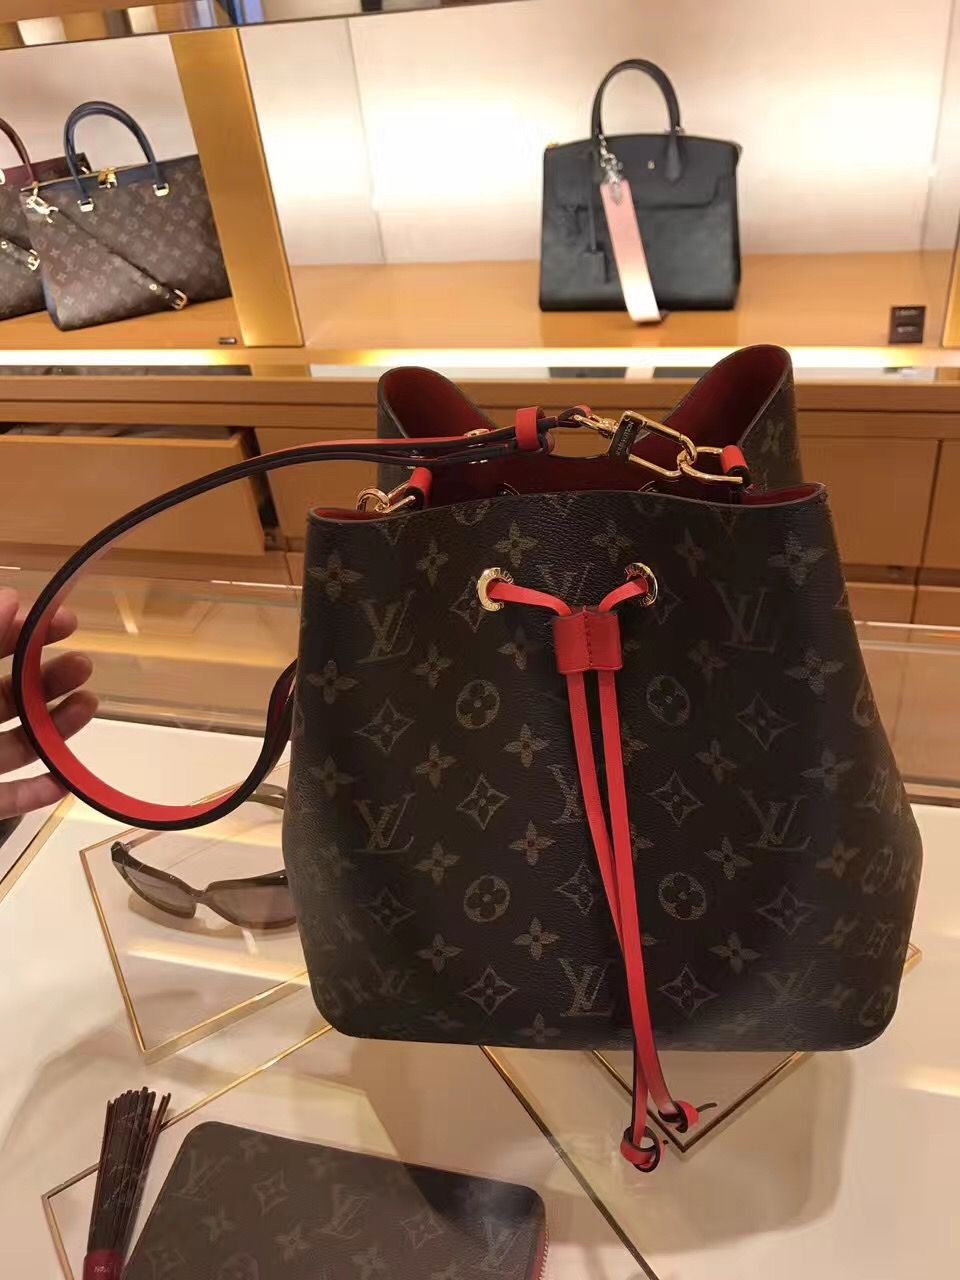 4258f3555961 Louis Vuitton Neonoe Shoulder Bag M44021 Red